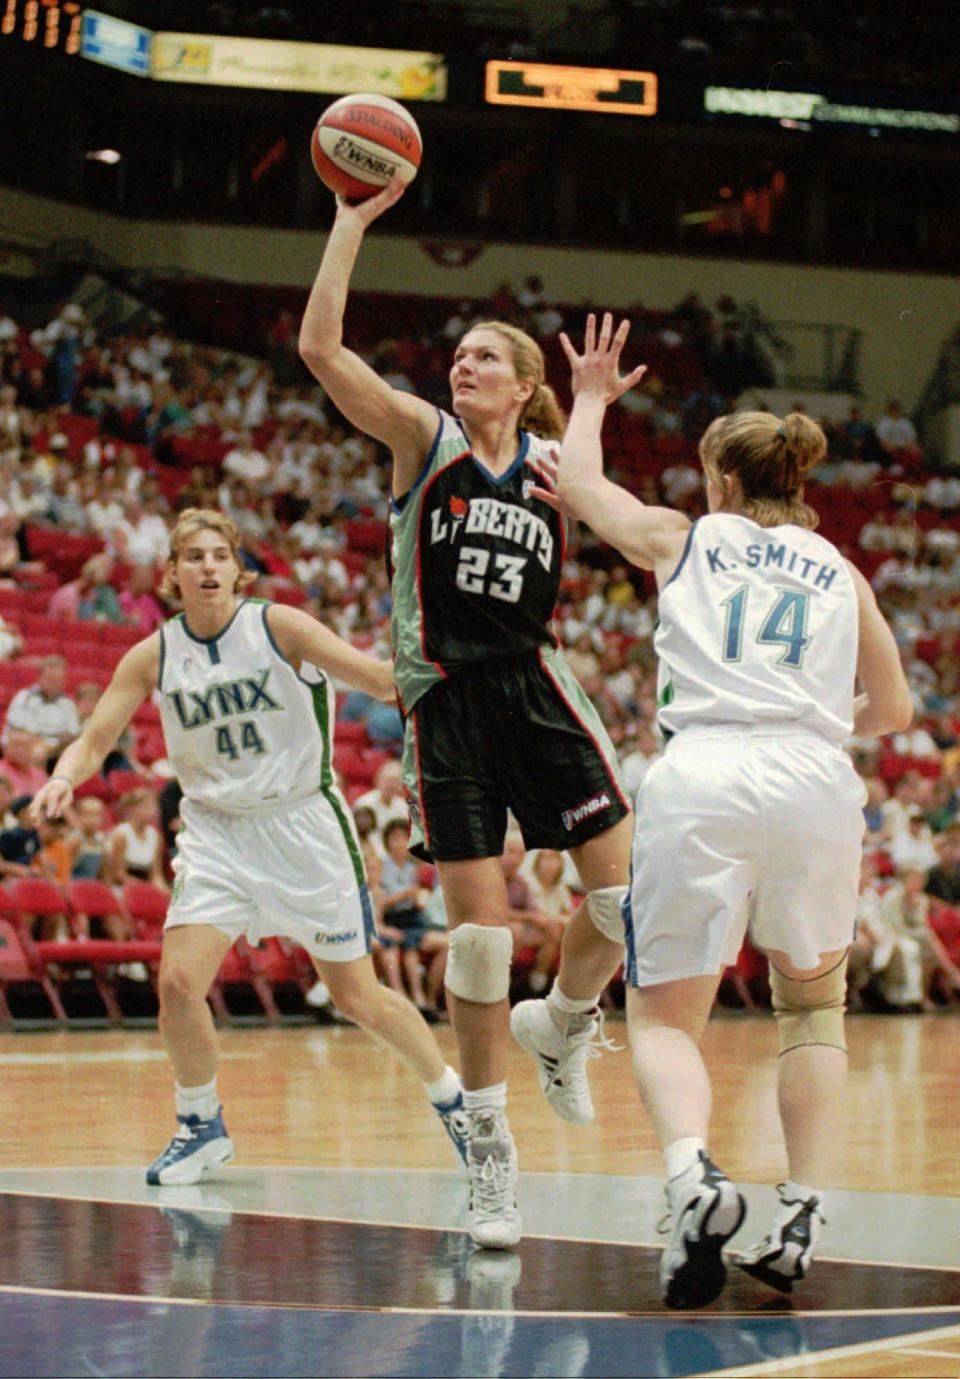 """FILE - In this July 17, 1999, file photo, New York Liberty forward Sue Wicks (23) shoots as Minnesota Lynx guard Katie Smith (14) and forward Angie Potthoff (44) move in to defend during the first half of a WNBA basketball game in Minneapolis. Wicks and Kym Hampton are """"Liberty Legends,"""" who have worked in the New York basketball community for years. (AP Photo/Adam M. Bettcher, File)"""